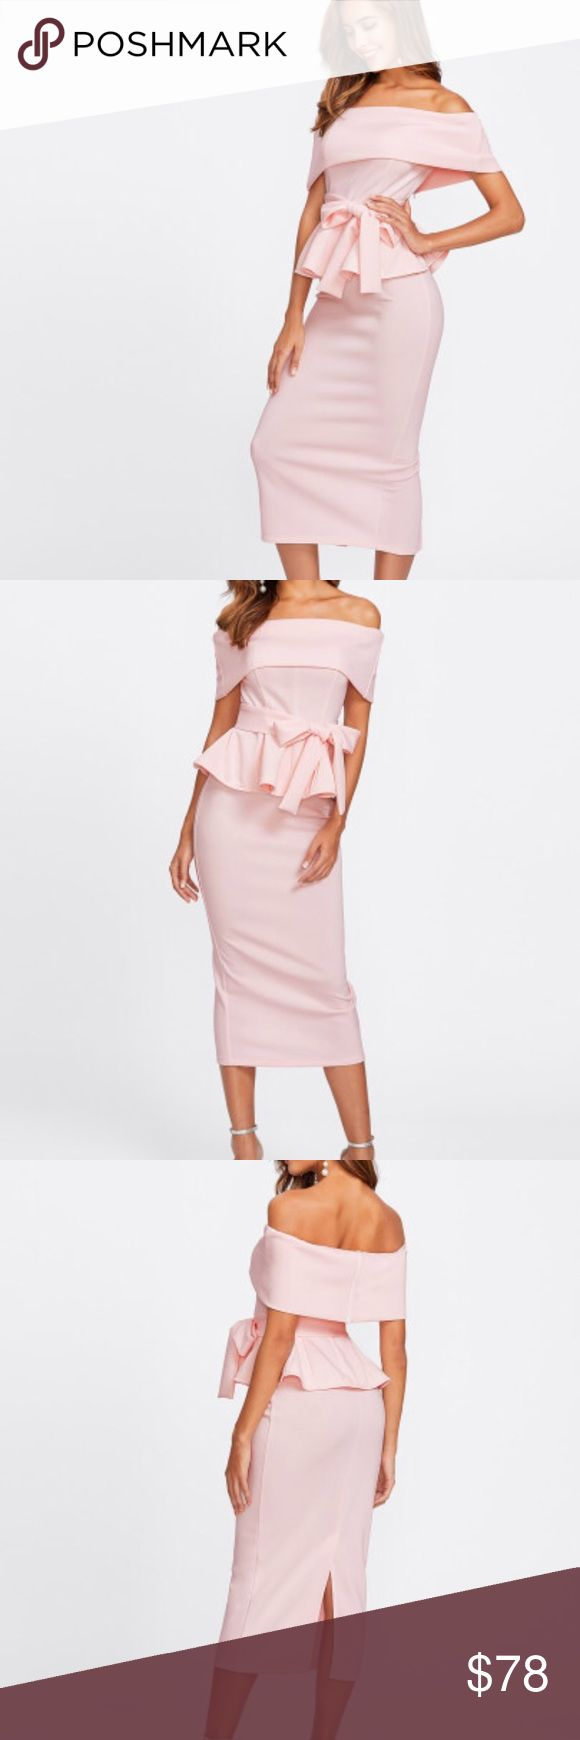 Foldover Bardot Peplum Top & Skirt Set Pre order- sale  Beautiful off shoulders set in blush / pink   Foldover Bardot Peplum Top & Skirt Set Ruffle, Ruffle Hem, Zipper, Belted, Split, Knot 95 % polyester 5% spandex  True to size Amabella Boutique Dresses Midi